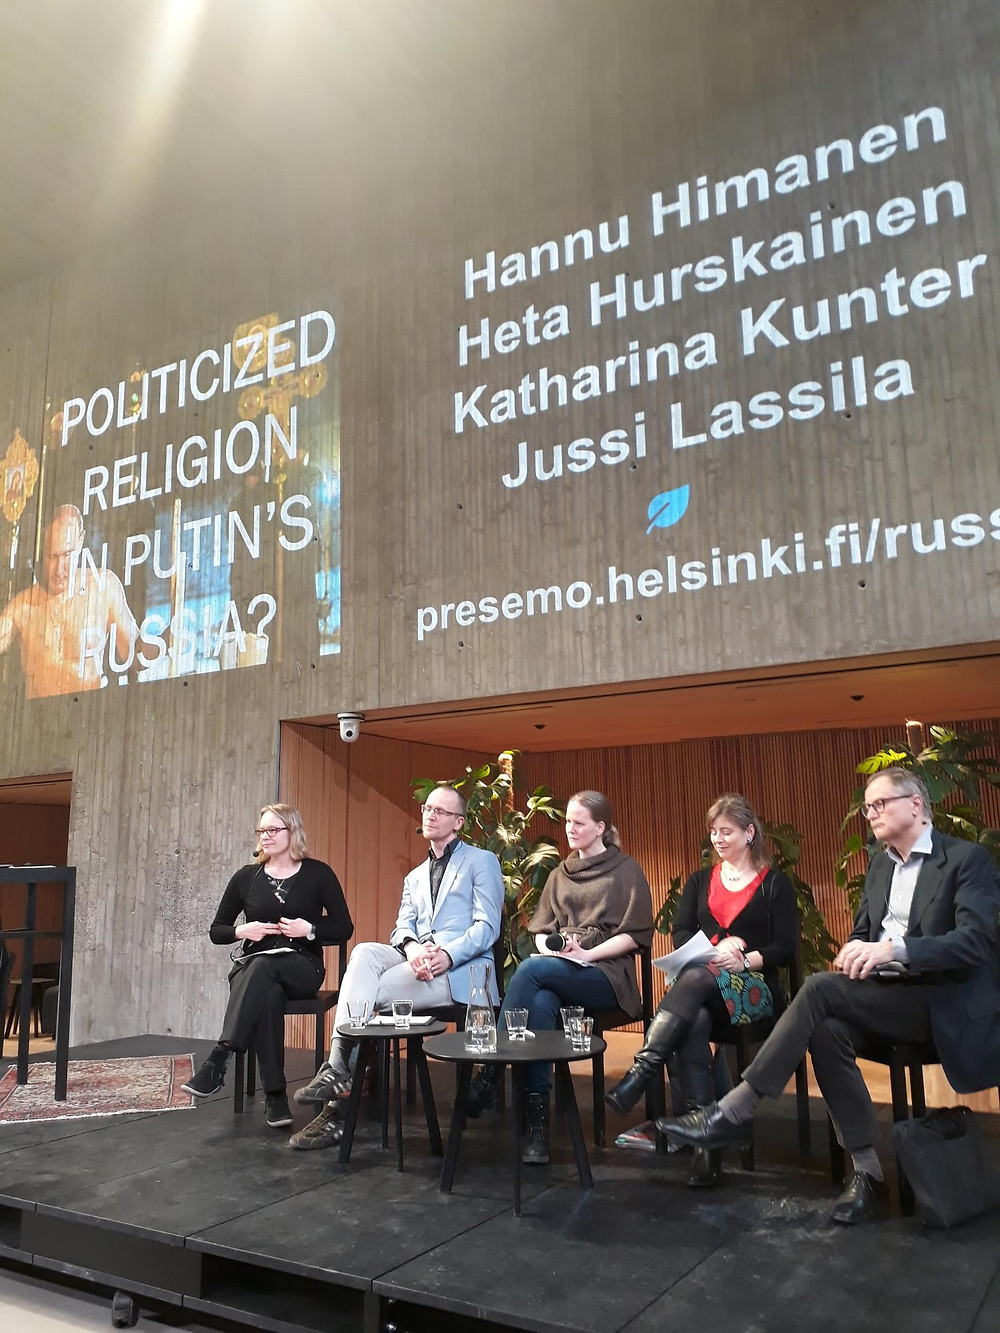 Good discussion at 11th of April 2018 at Tiedekulma Helsinki